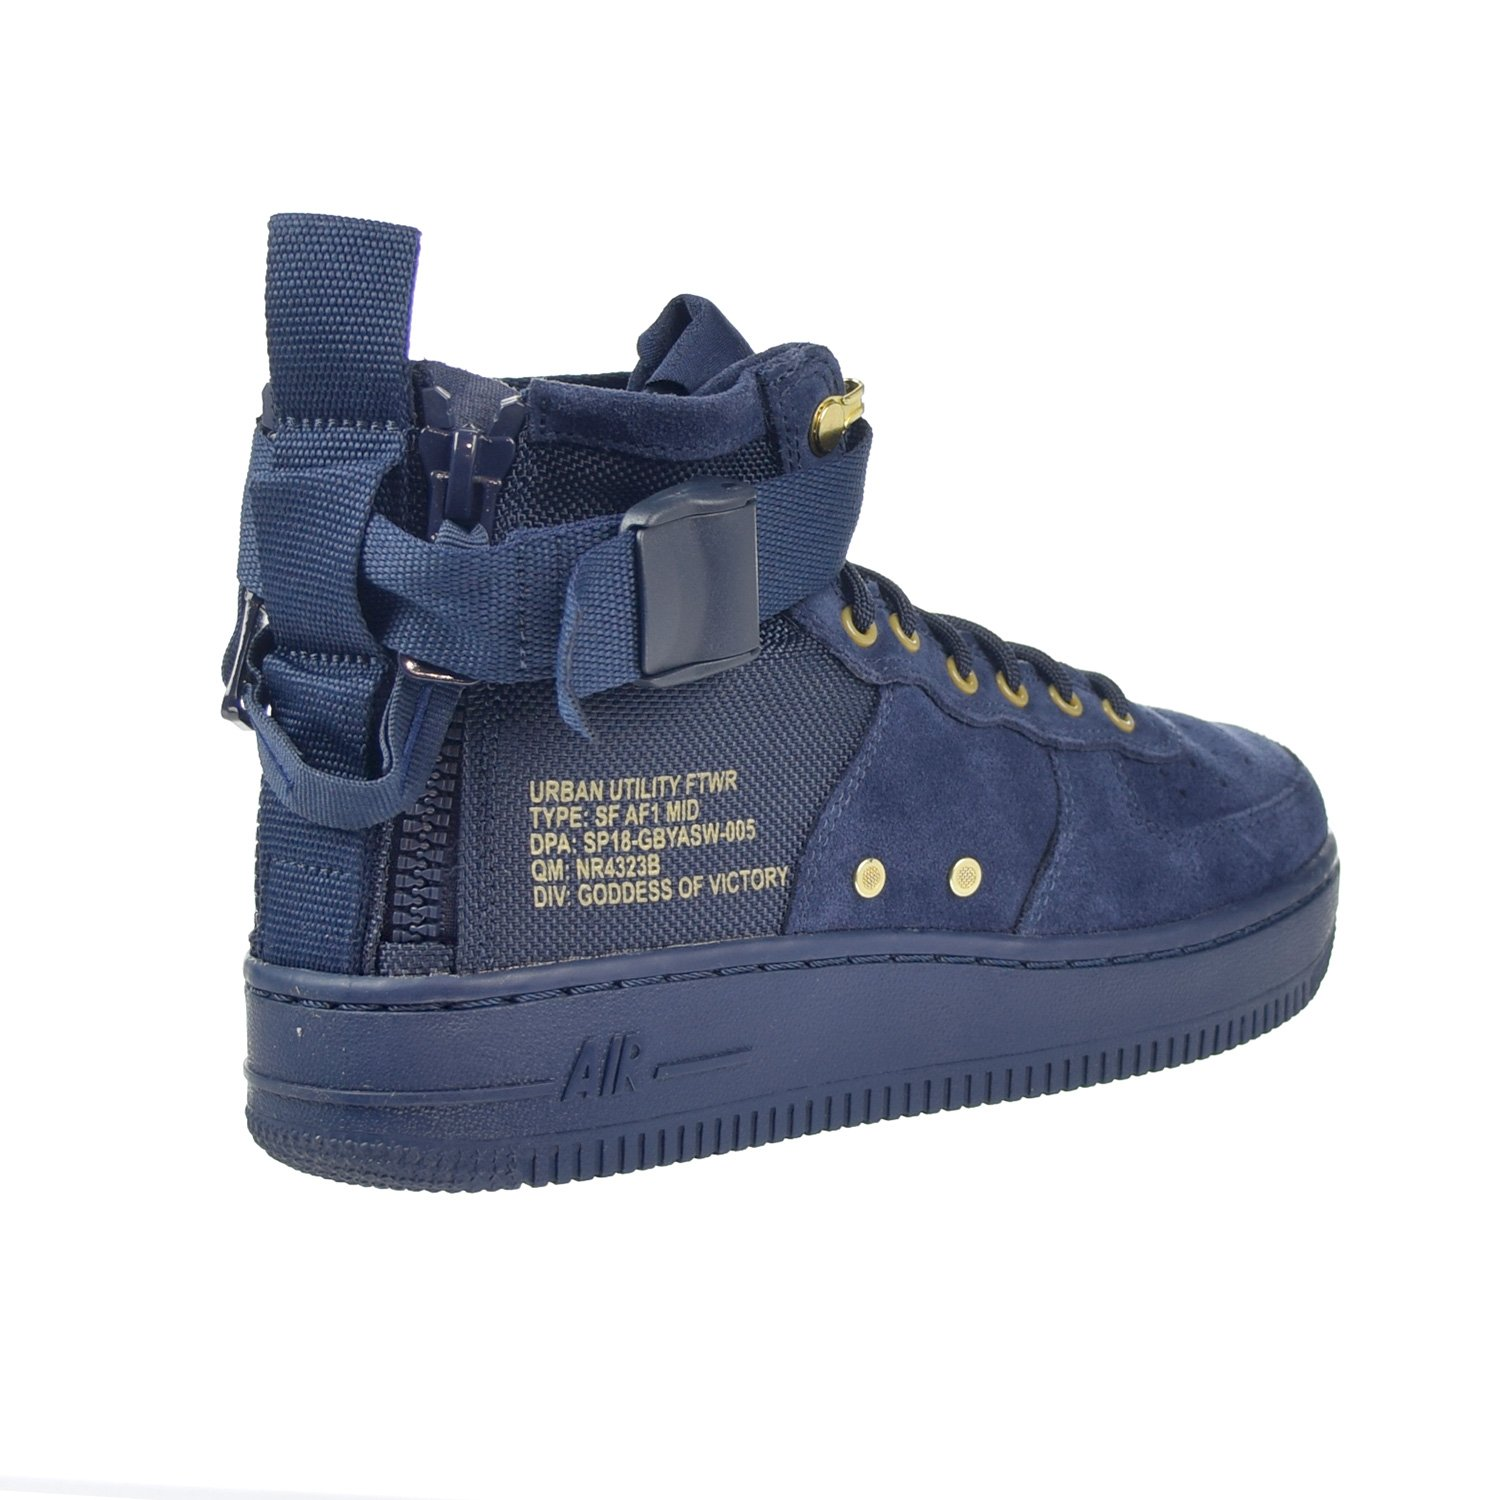 Nike SF AF1 Air Force MID Big Kids Shoes Obsidian Blue/Black aj0424-400 (3.5 M US) by Nike (Image #3)